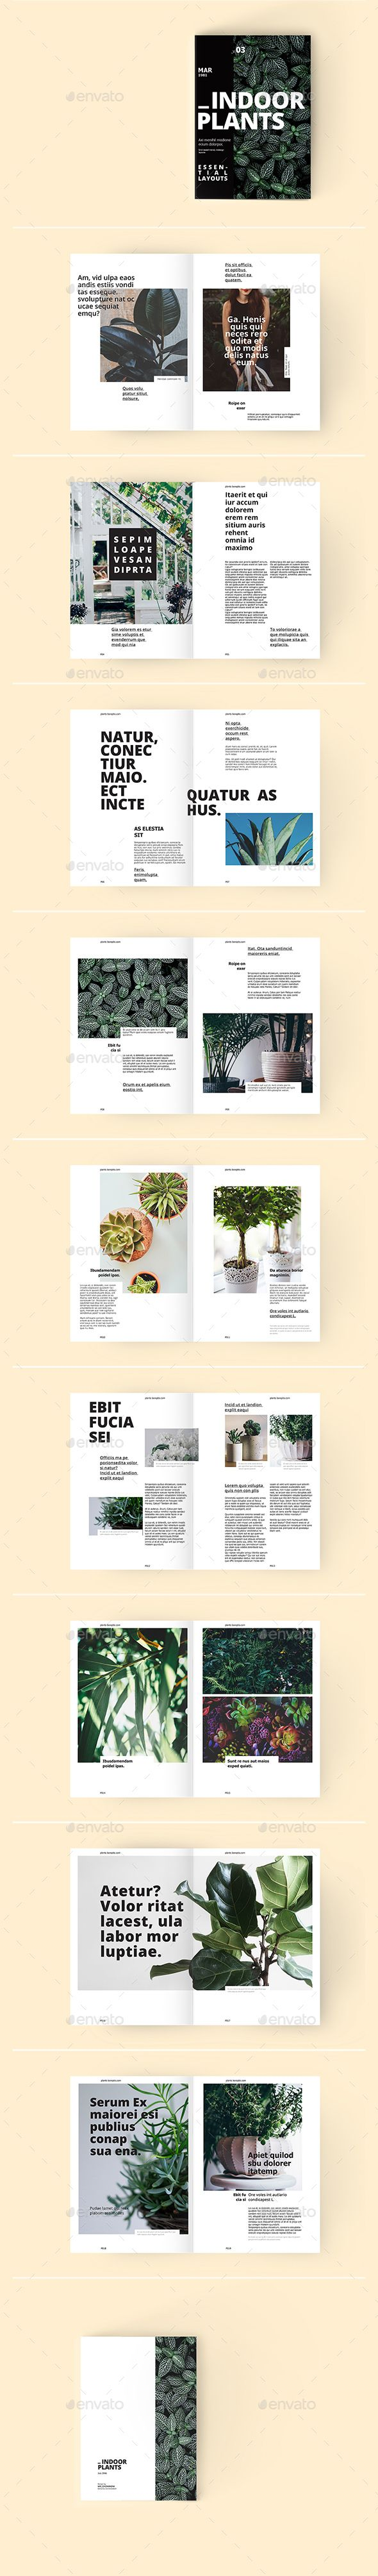 Indoor Plants - A Magazine Template by Mr_ChowMow A Set of trendy minimalistic InDesign page layouts that will help you create a modern looking magazine. Grid based A4 template sui